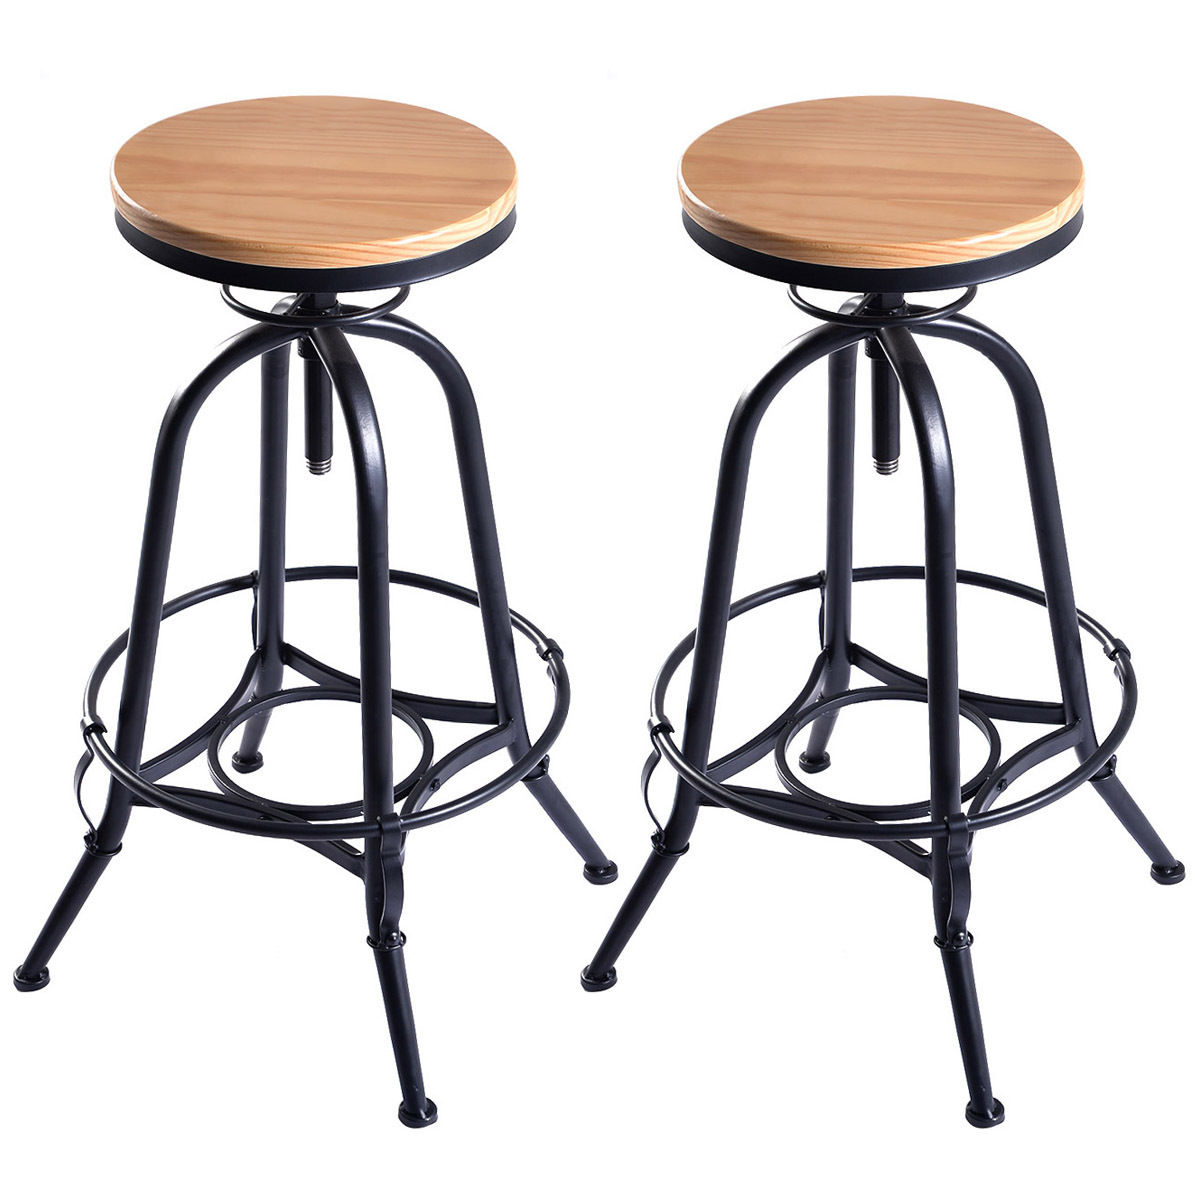 Giantex Set of 2 Vintage Bar Stools Industrial Wood Top Metal Design Pub Stool Chairs Adjustable Swivel Bar Stool 2*HW51305 bar chairs antique industrial design pu leather bar stool round seat adjustable swivel bar stools in exterior house design